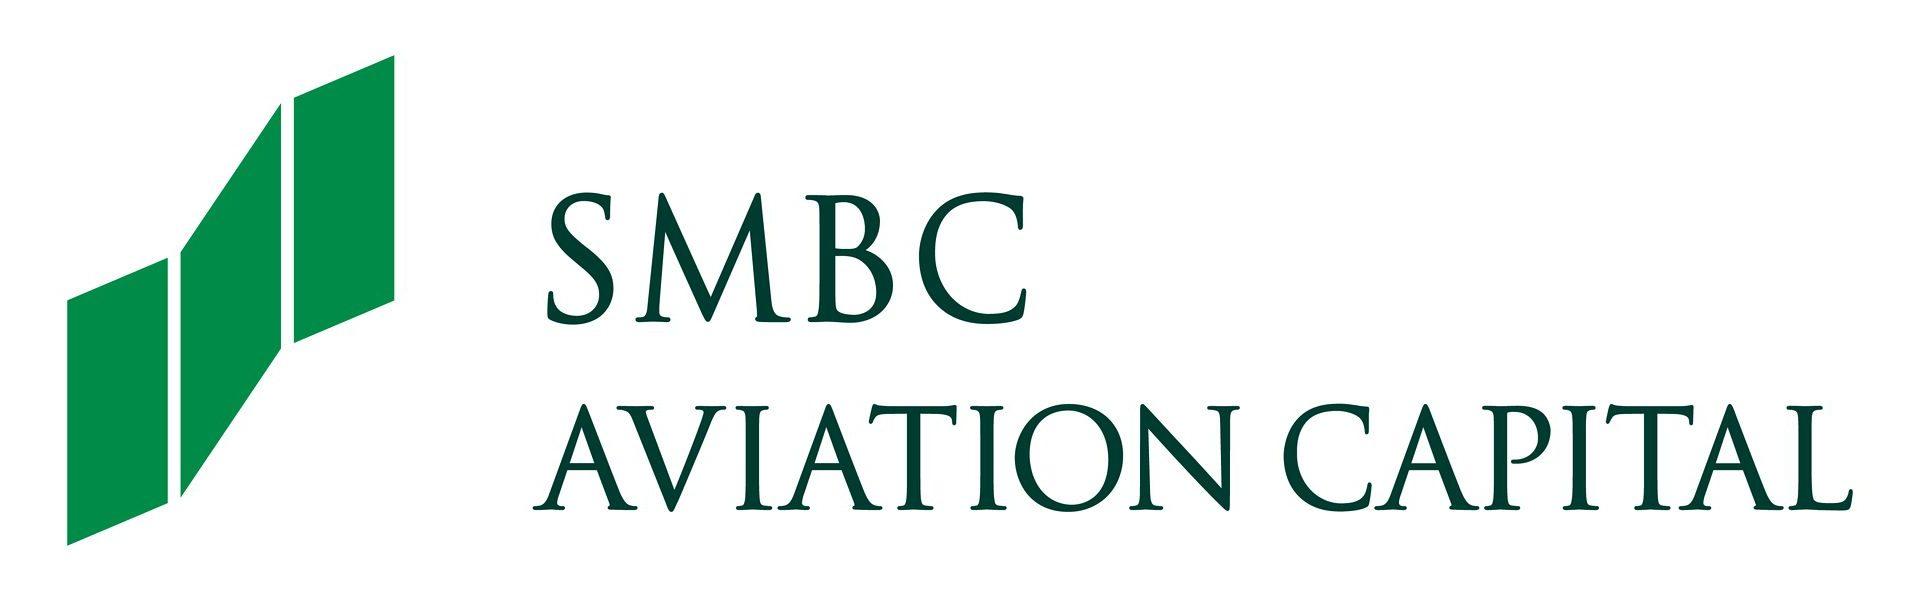 Leasing company SMBC Aviation Capital placed order for 14 more airplanes Boeing 737 MAX 8